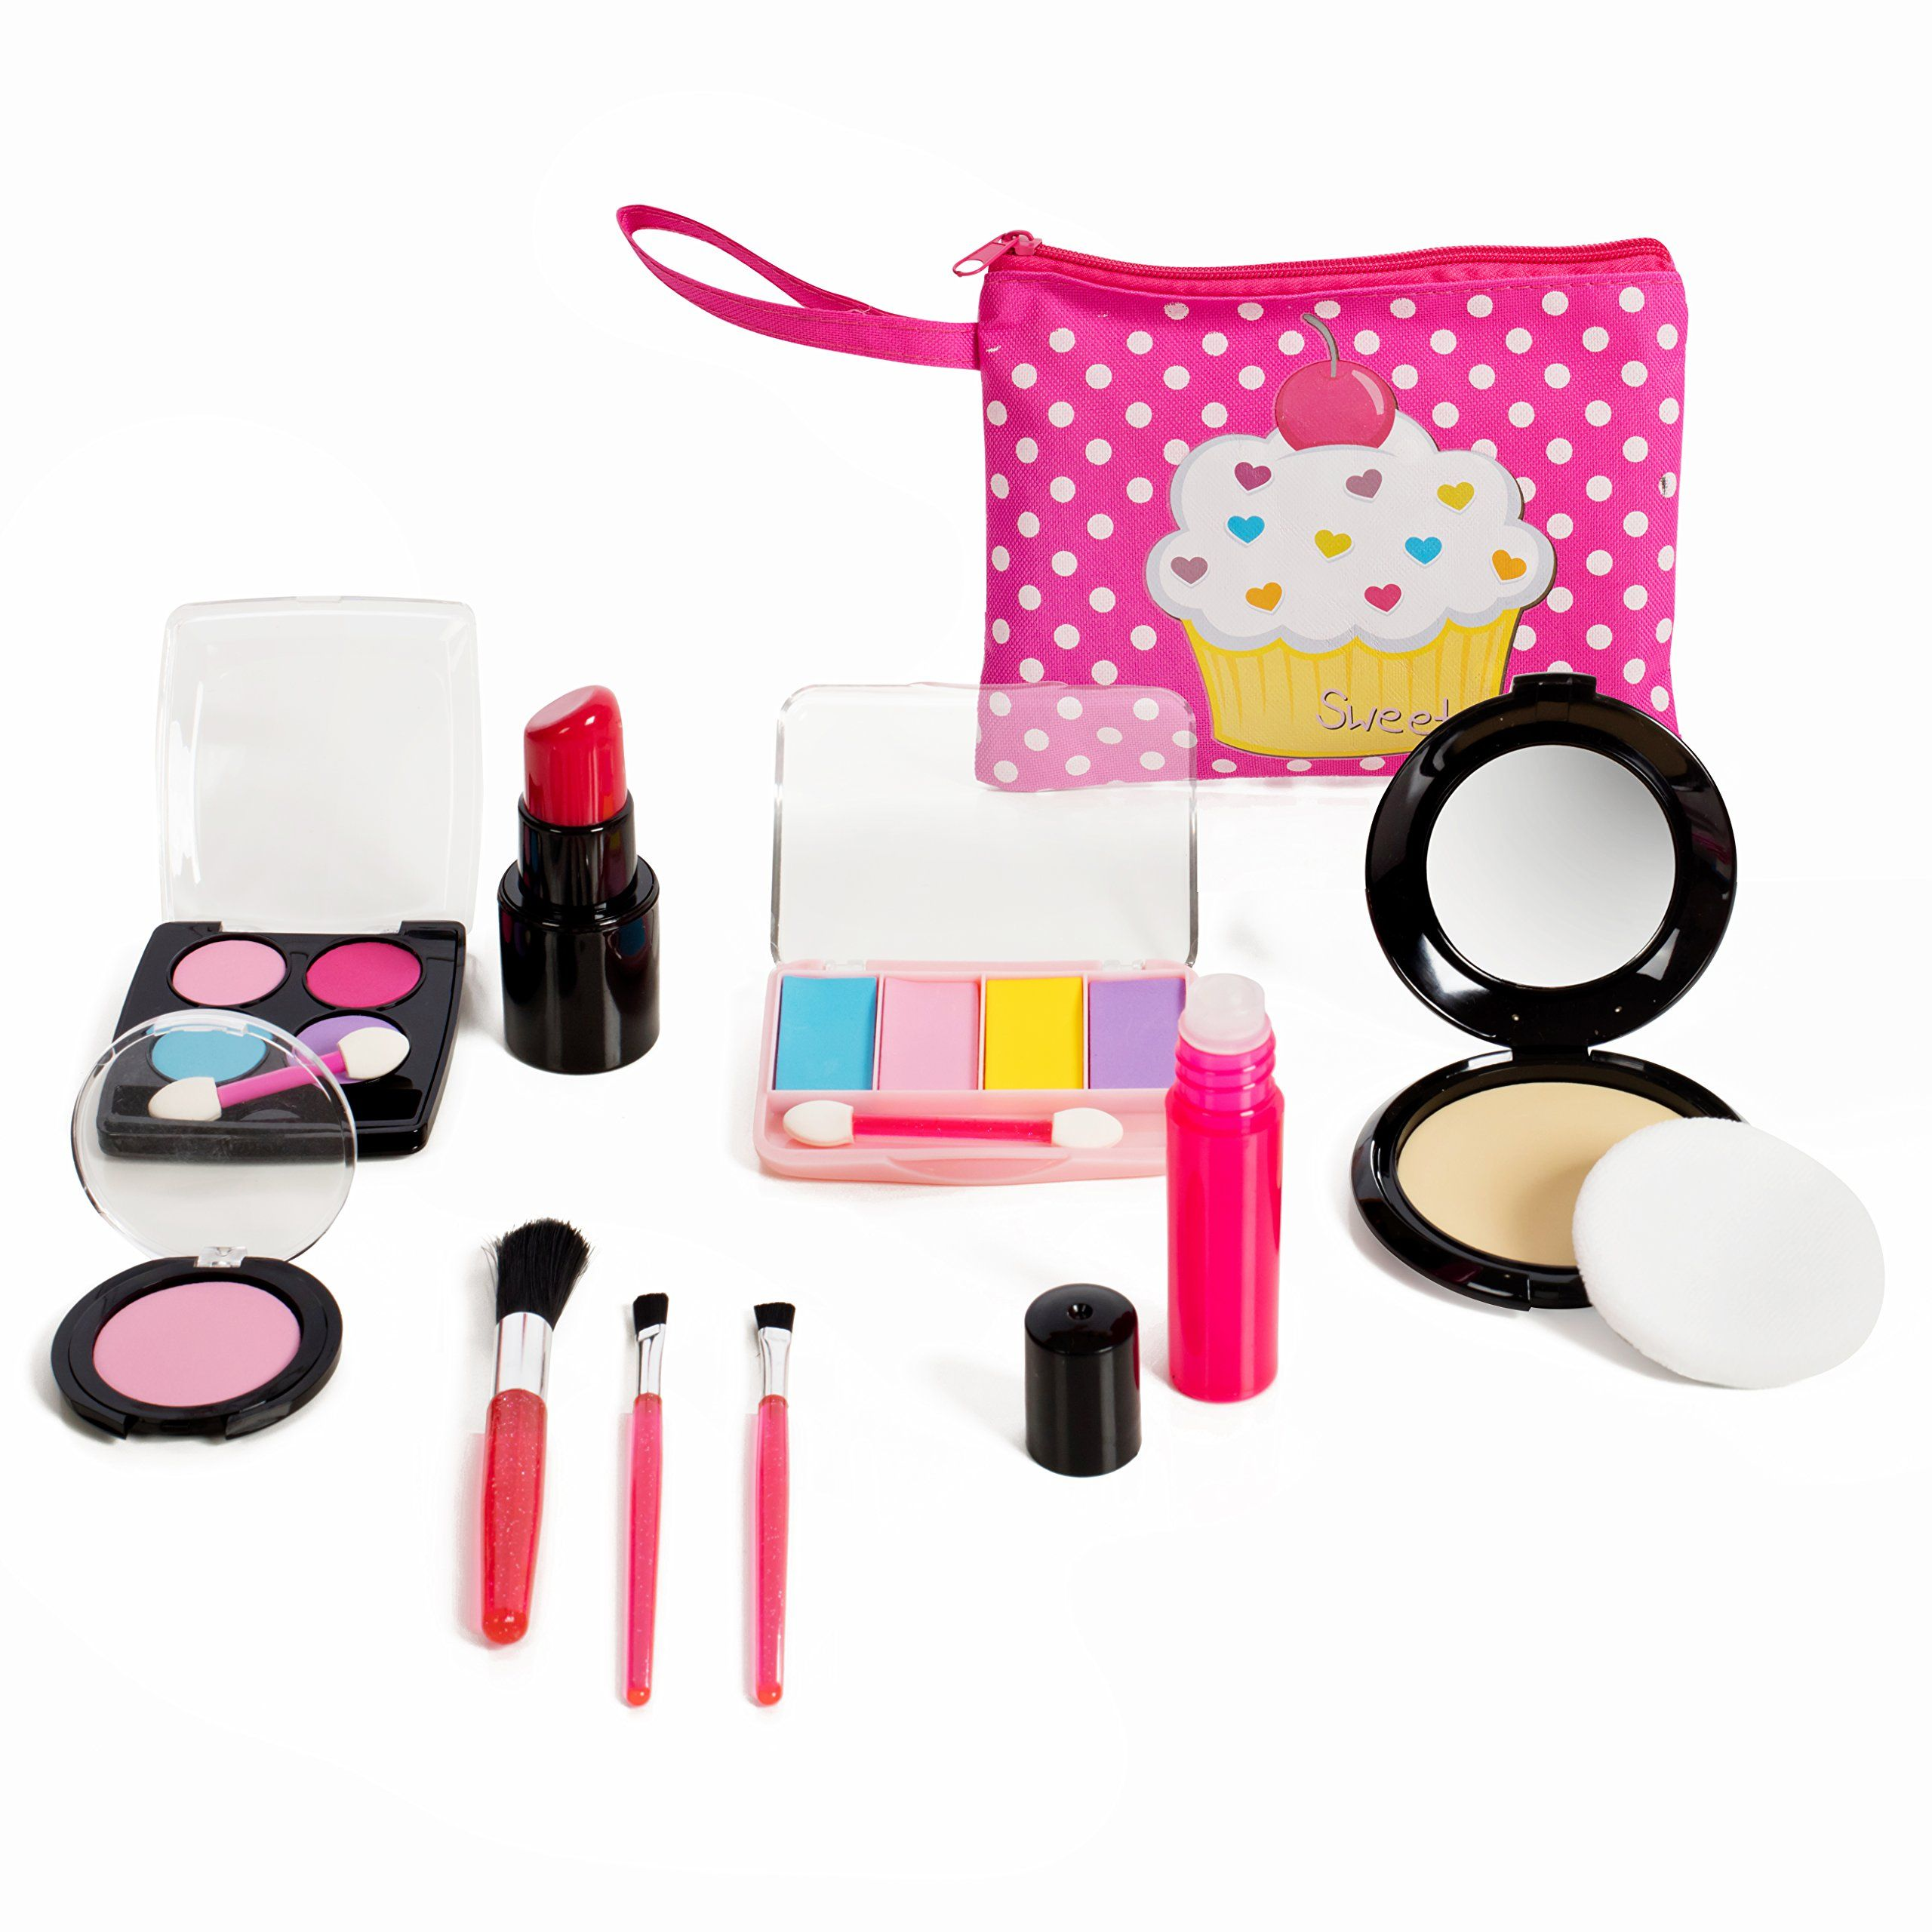 Beverly Hills Kids Pretend Play Makeup Cosmetic Kit With